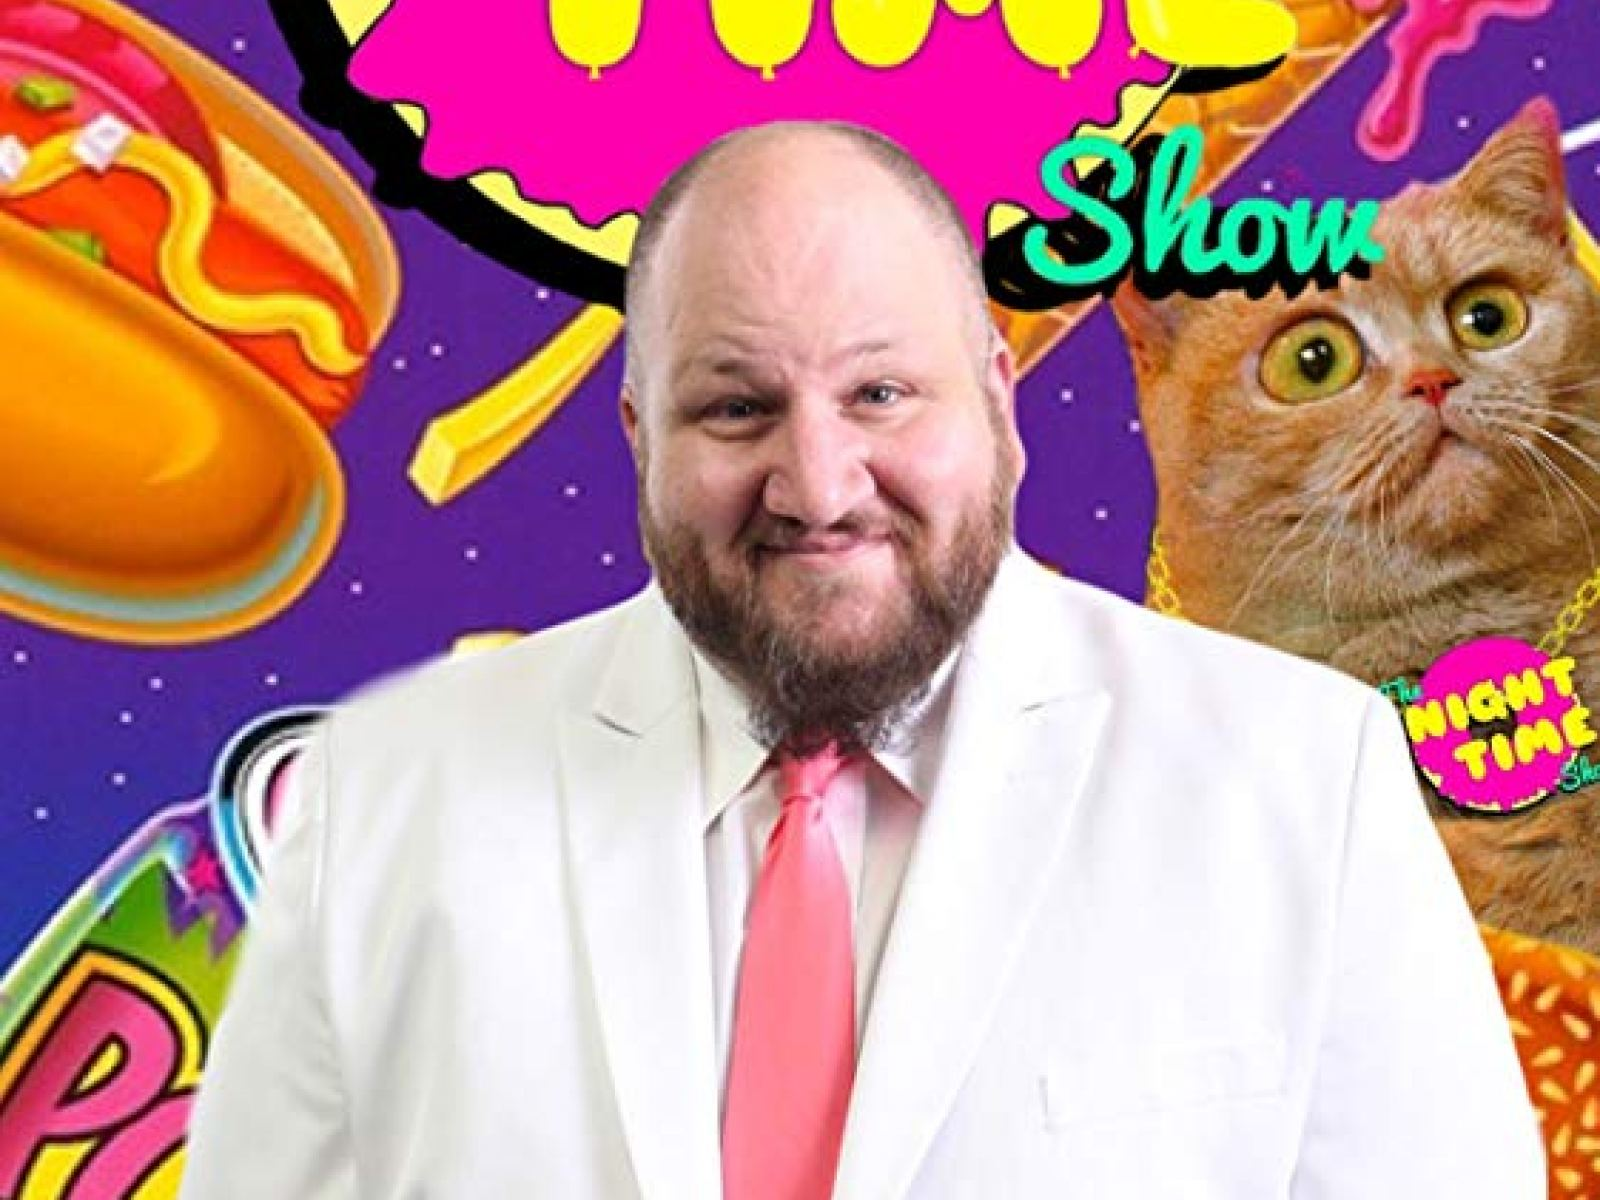 The Night Time Show - Live Talk Show with Stephen Kramer Glickman